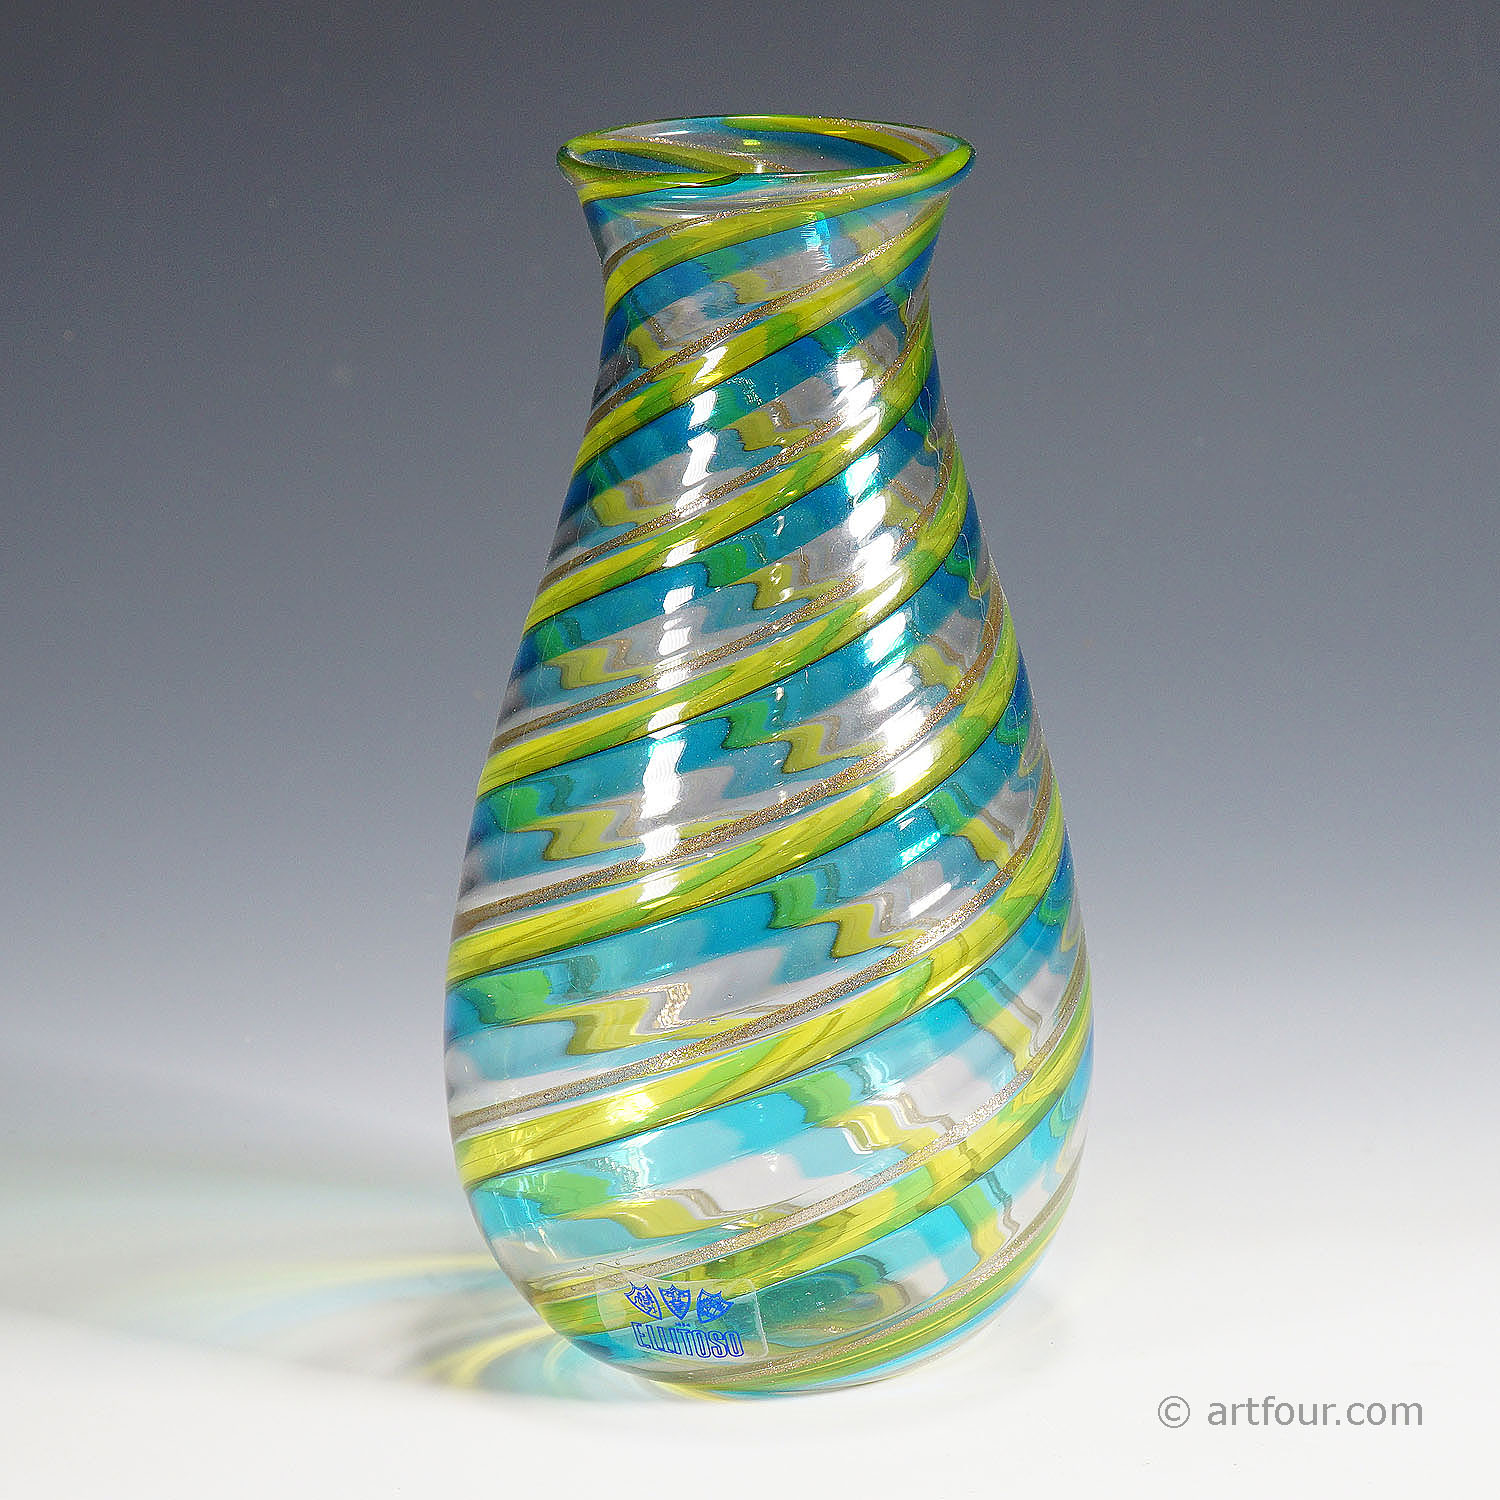 a fratelli toso 'a canne' vase with aventurin, murano, ca. 1965